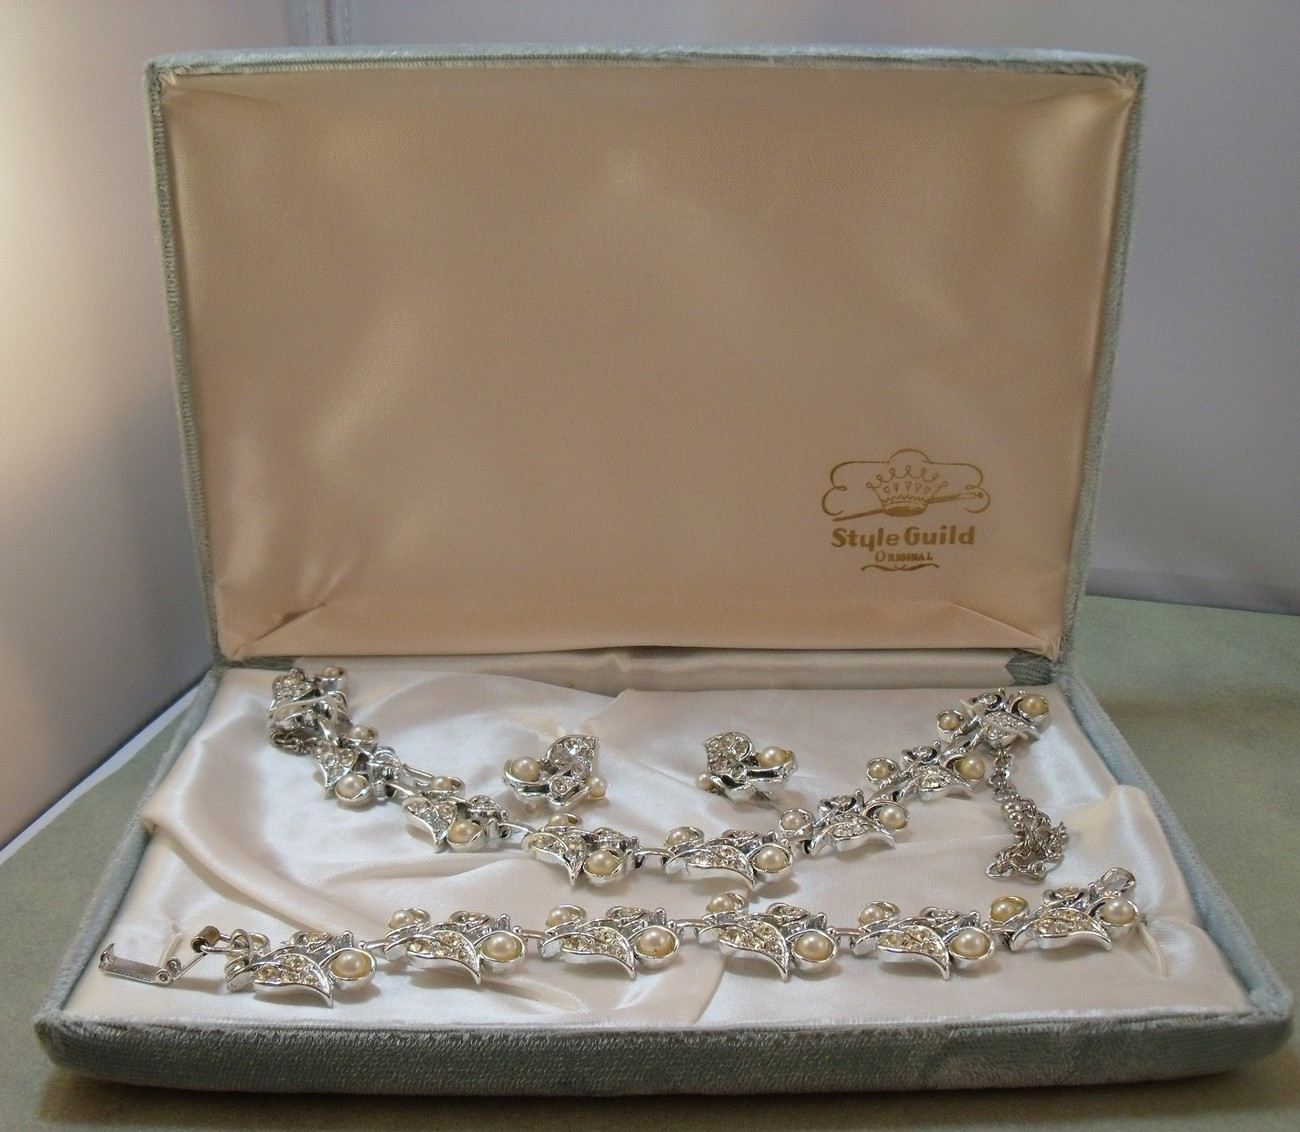 Vintage Style Guild simulated pearl and rhinestone parure in original box